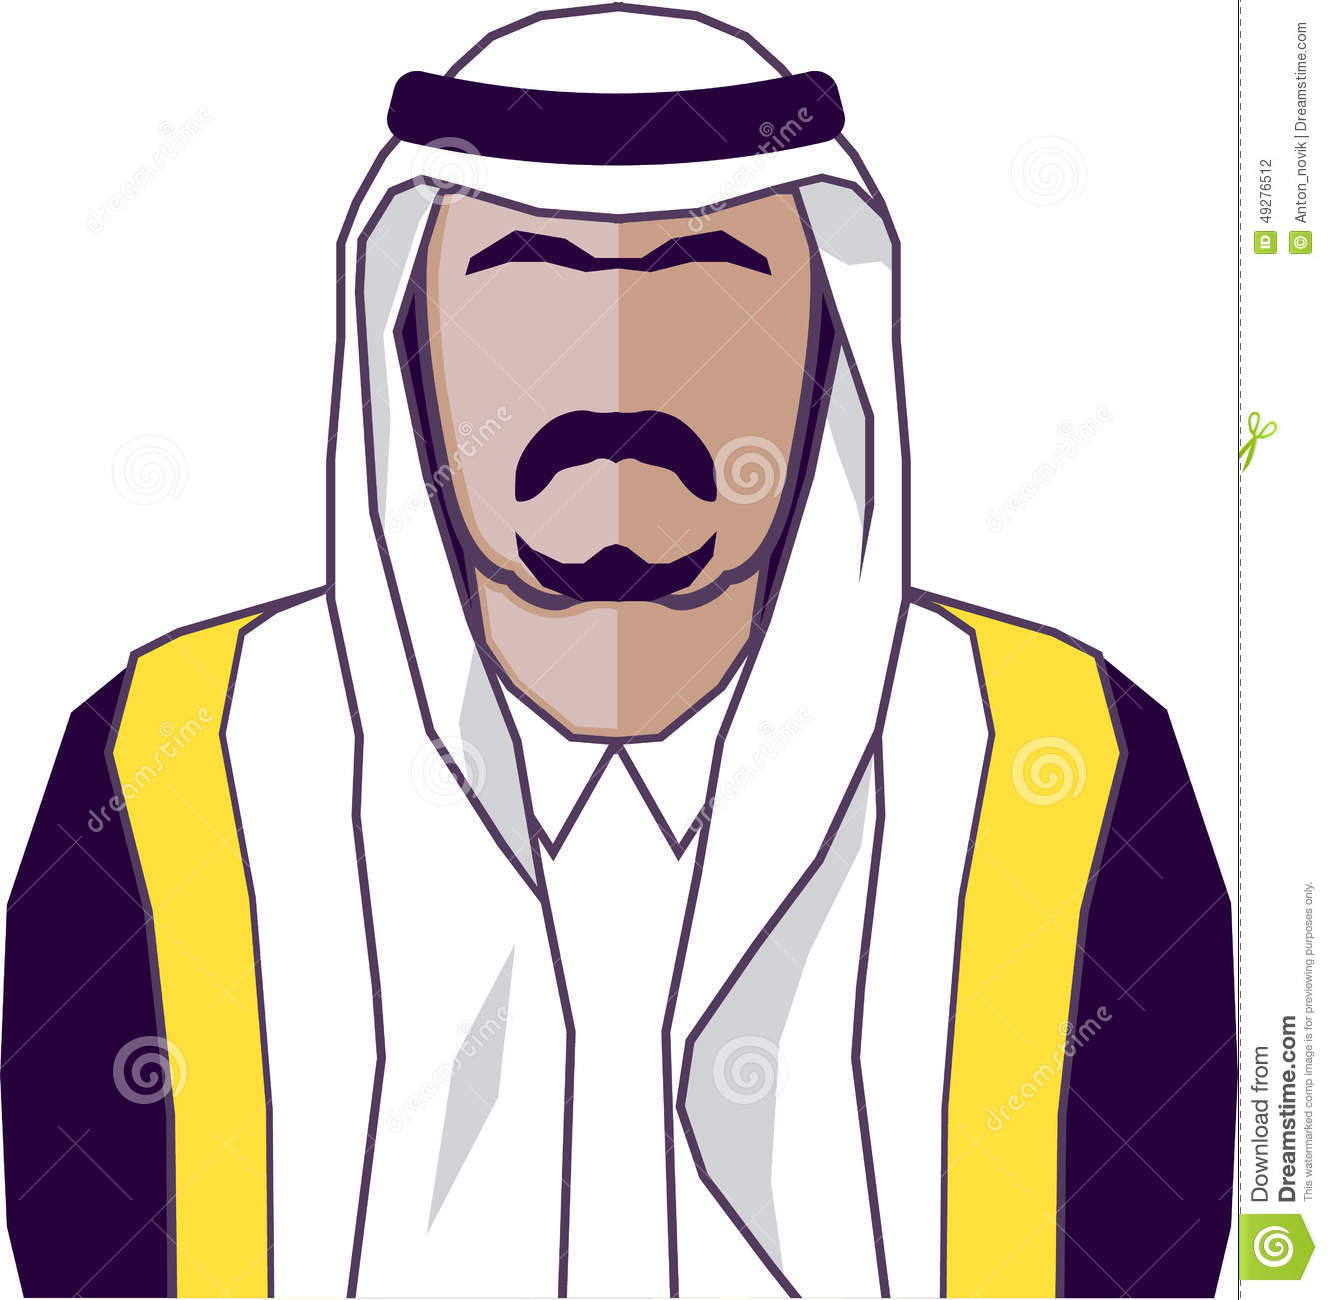 Arabian clipart arab person #8